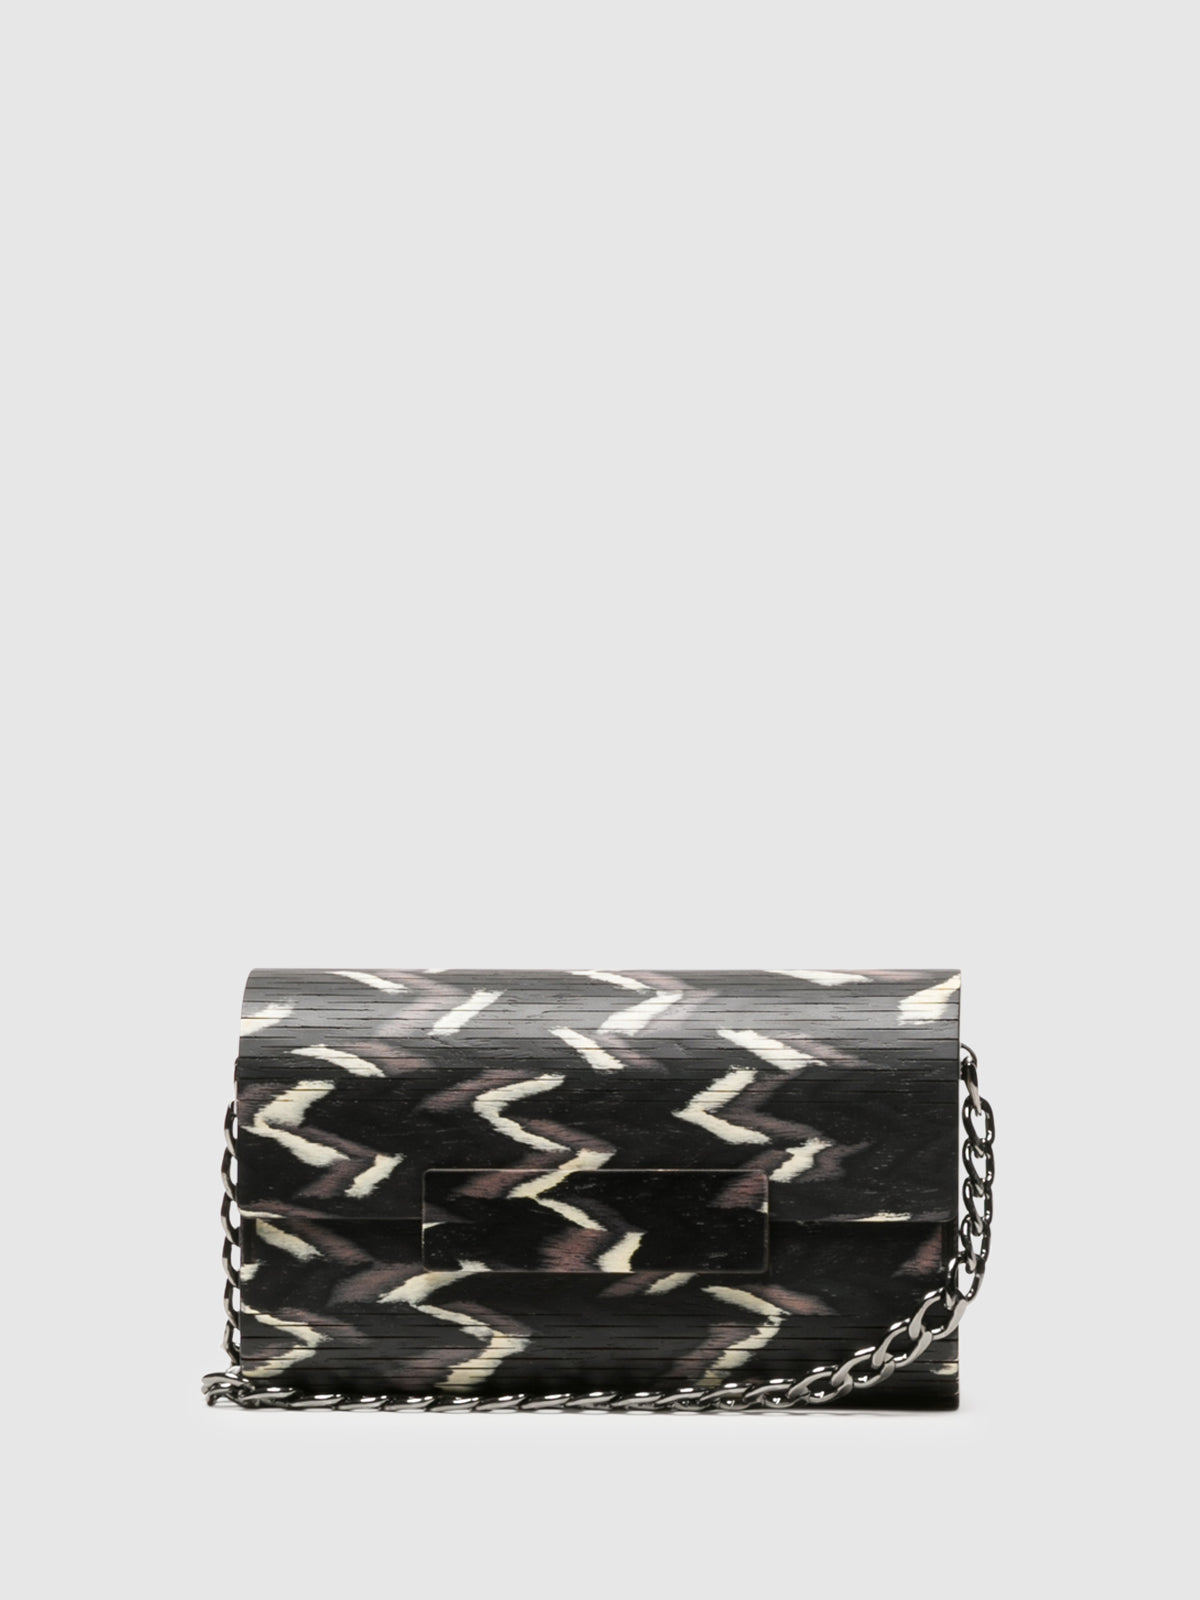 Marita Moreno Multicolor Clutch